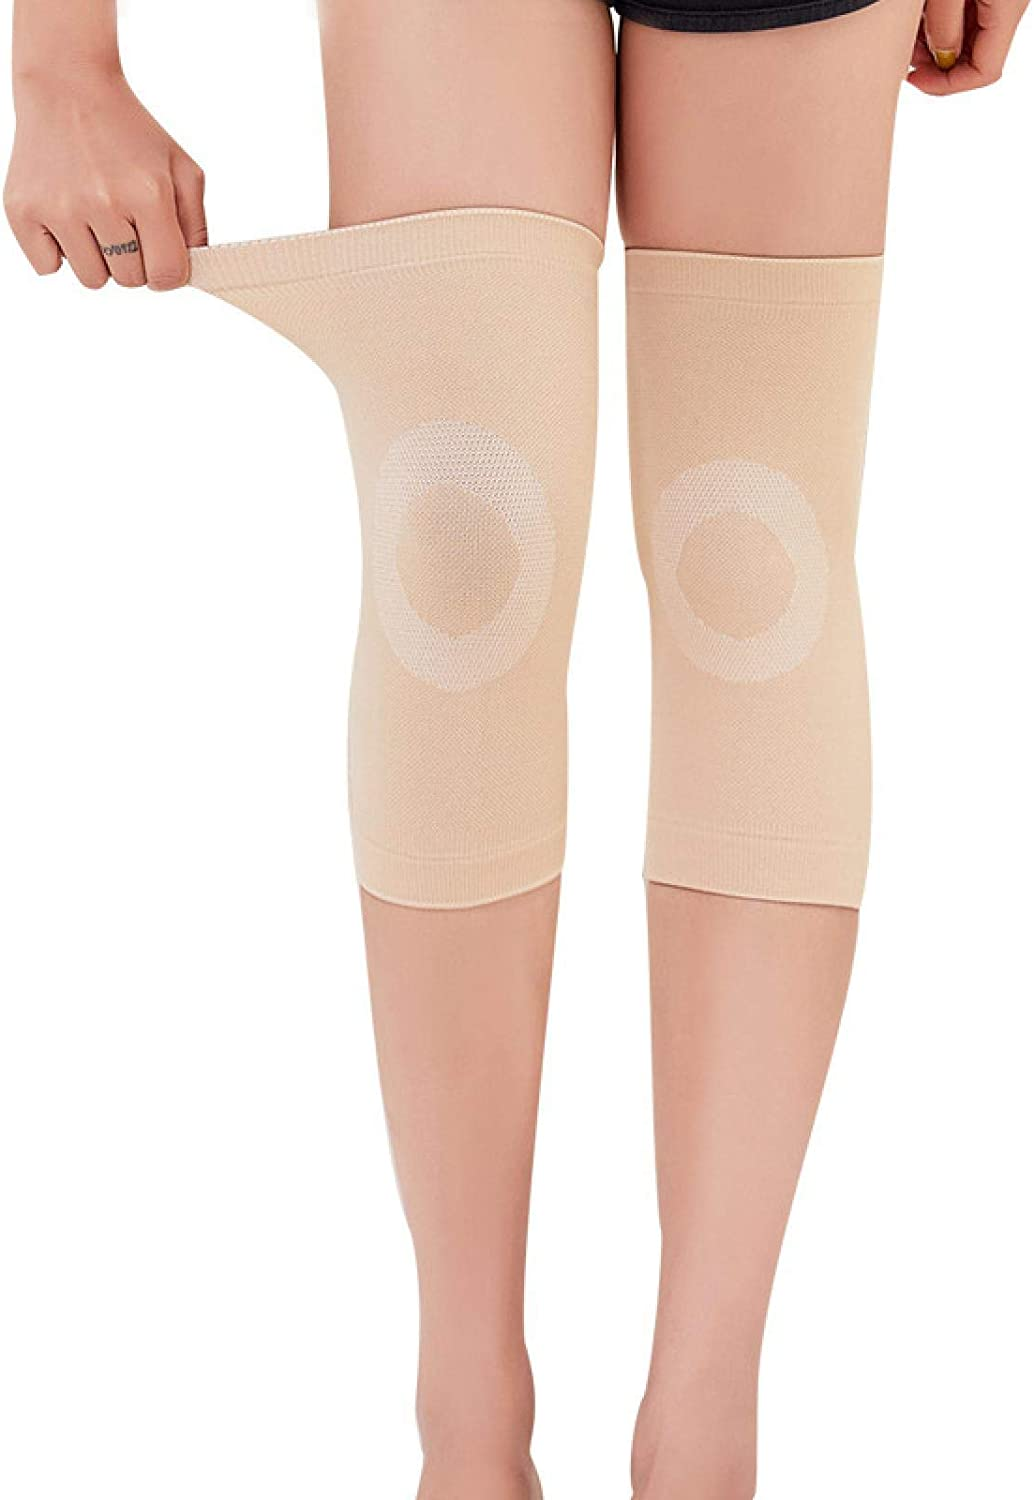 Kneepad Exercise Four Side Roo Conditioning air online Clearance SALE! Limited time! shop Spring